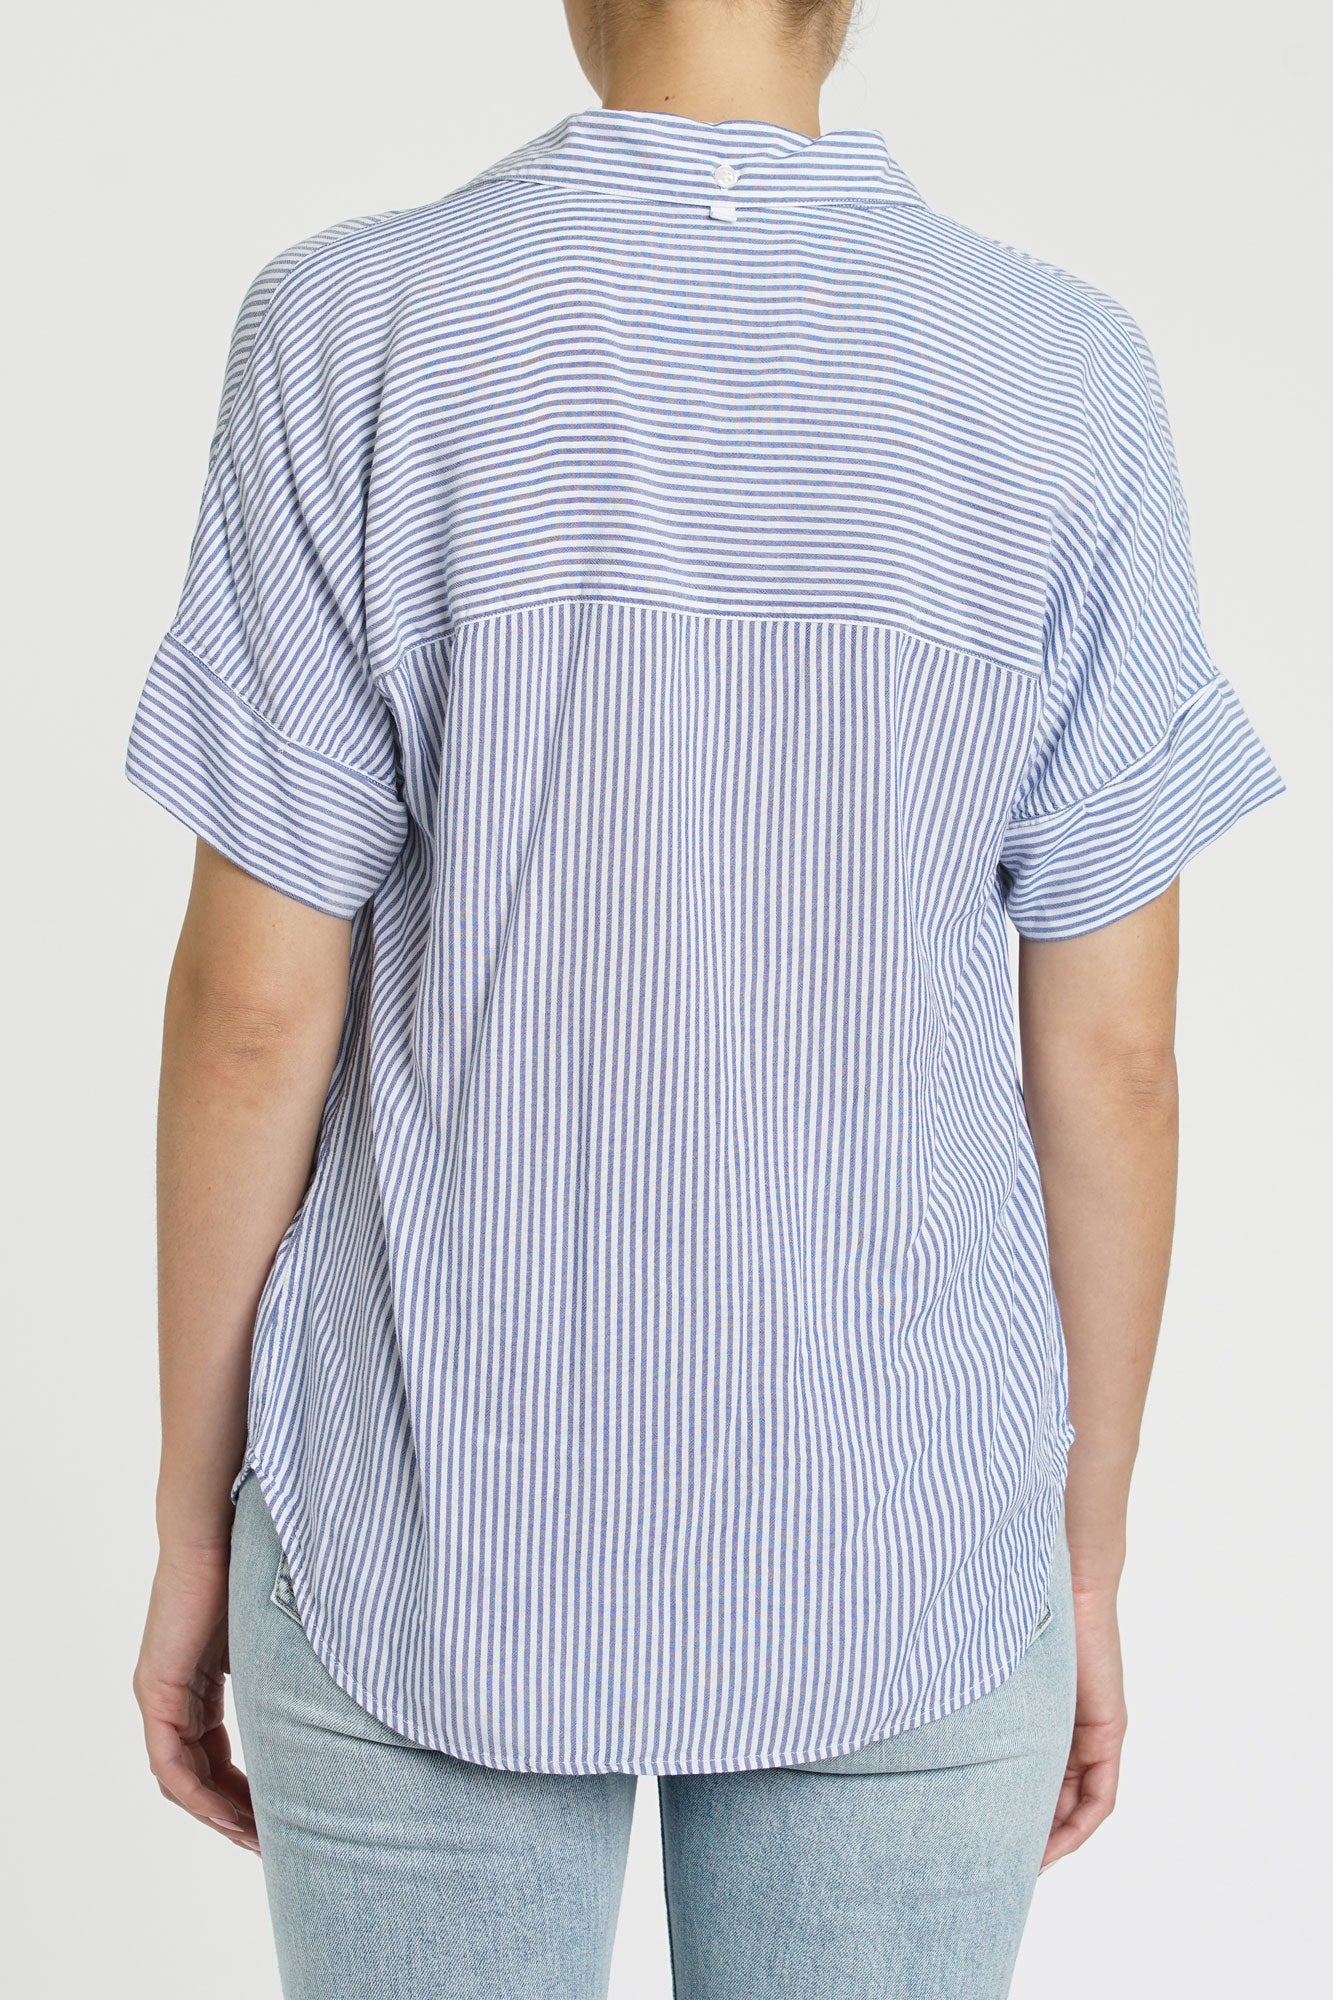 Avery Striped Short Sleeve Button Up - Bowler